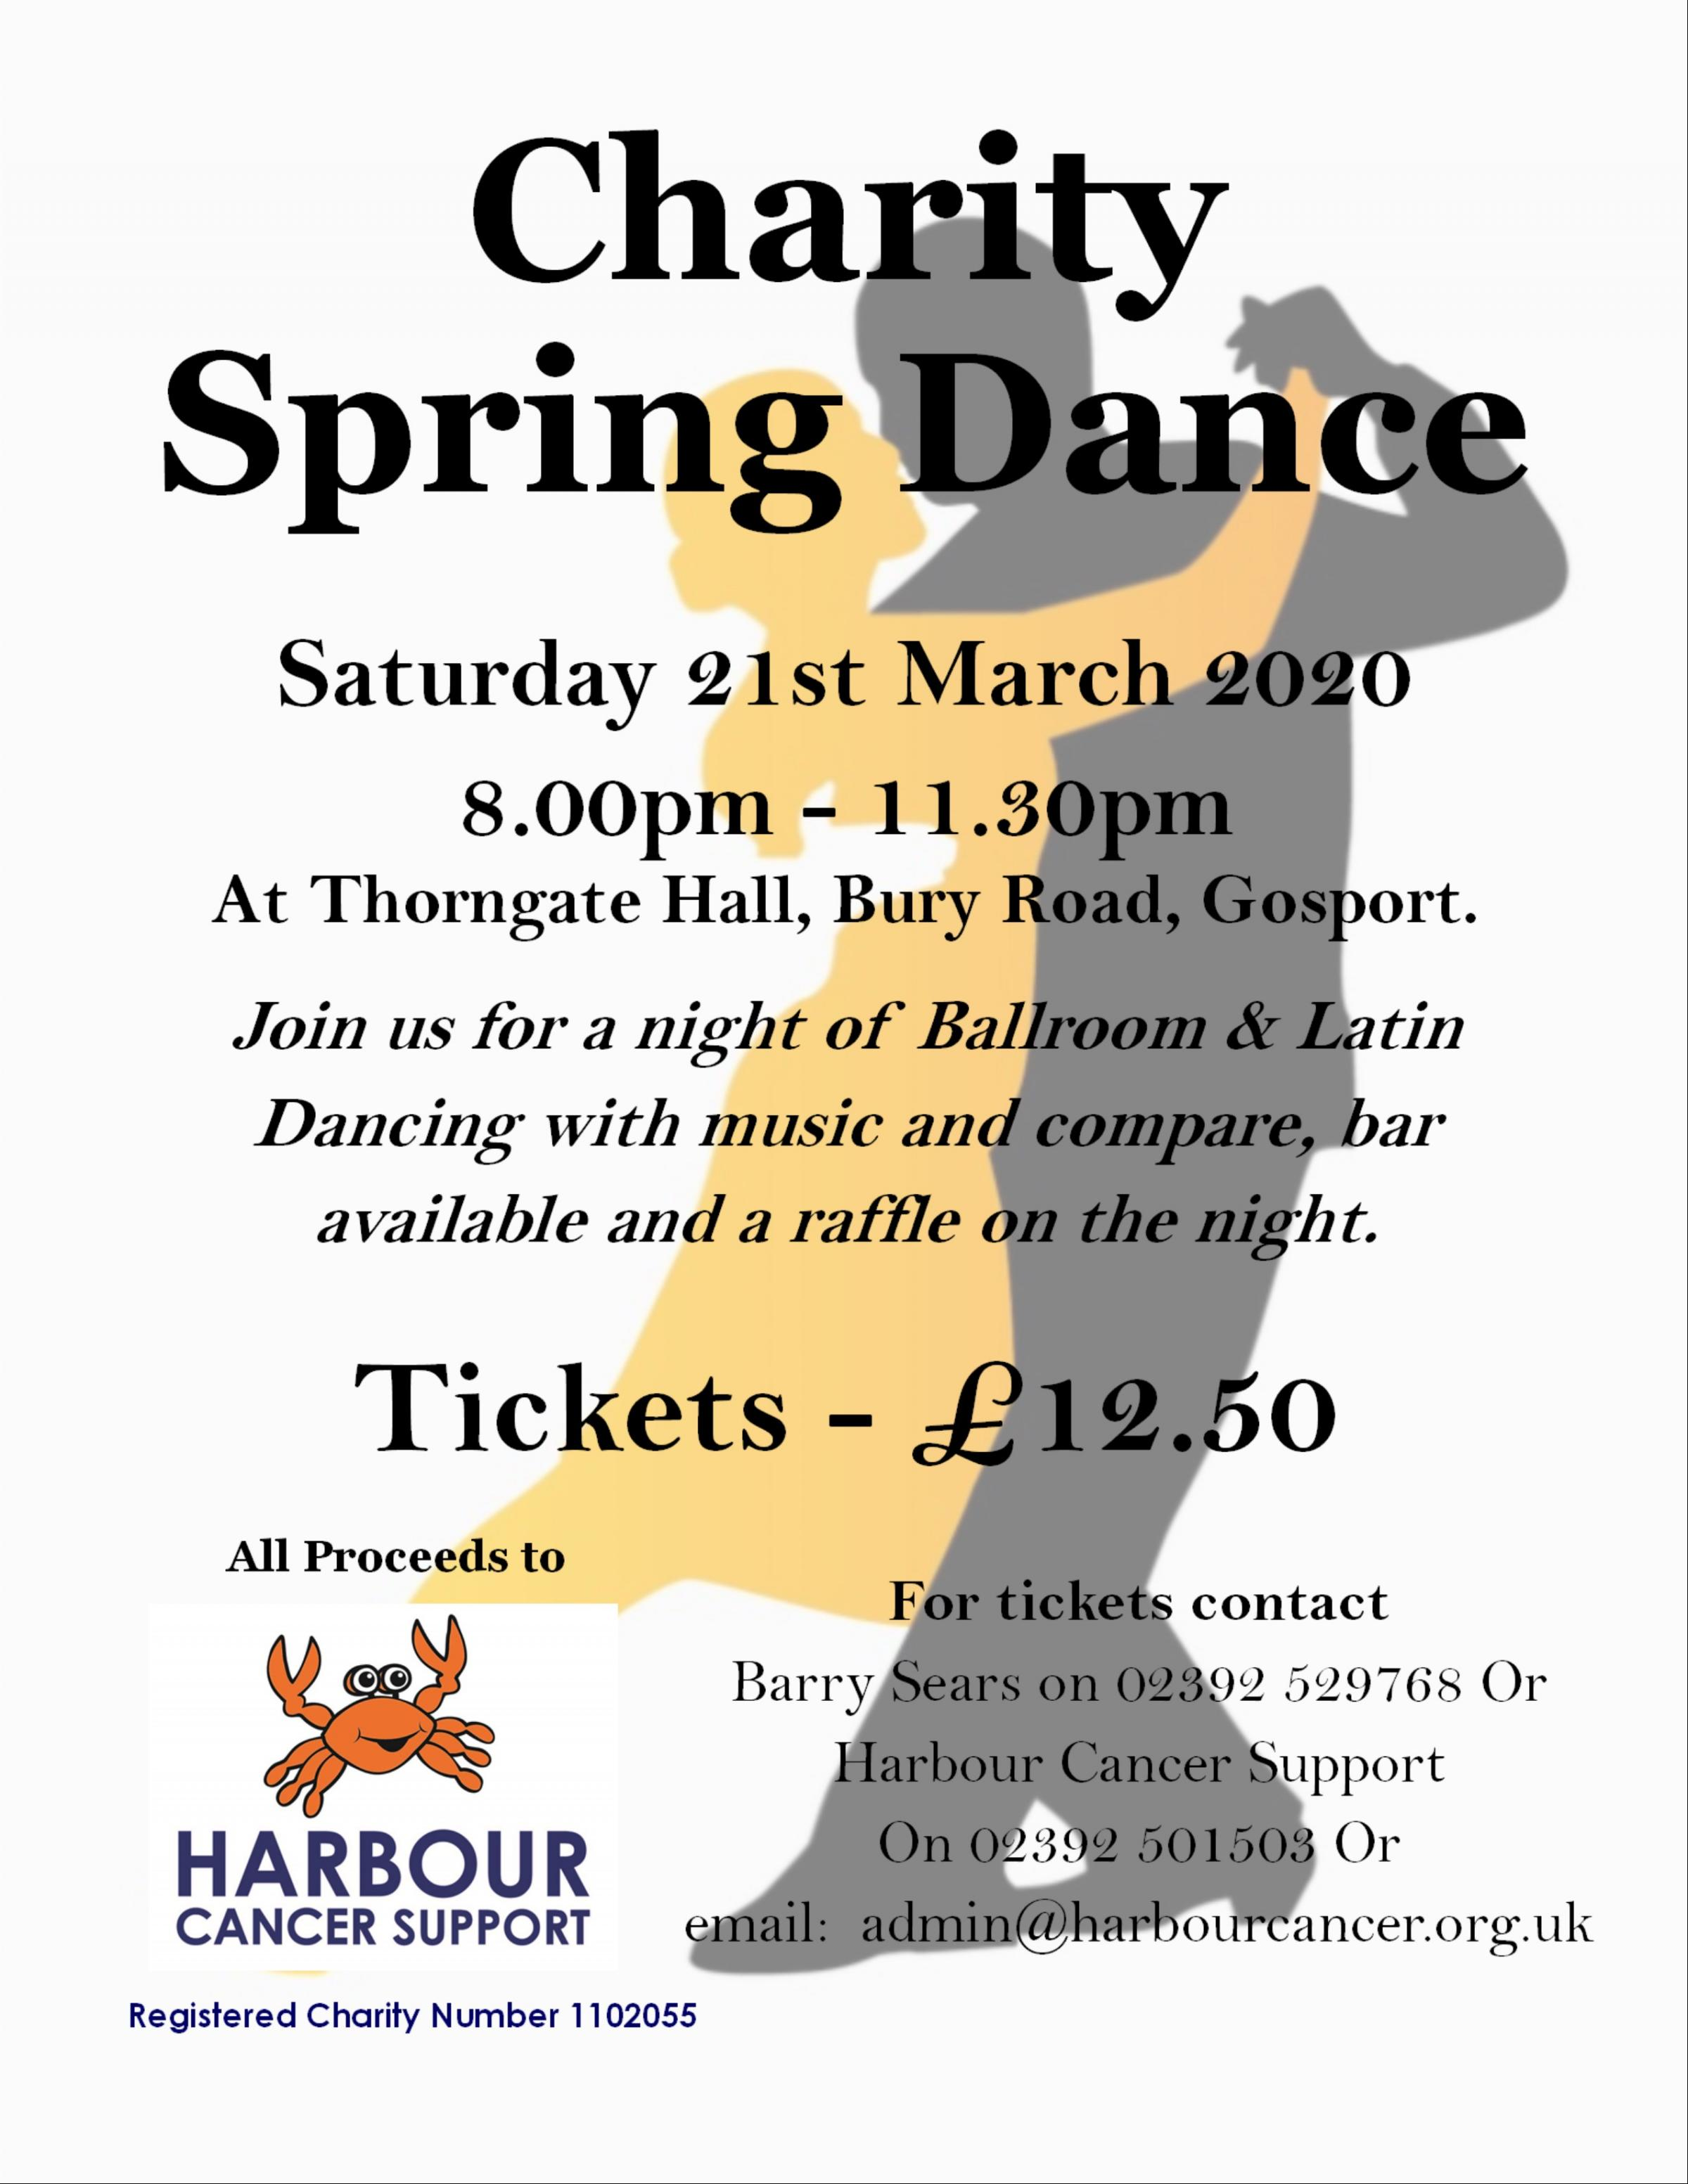 Charity Spring Dance